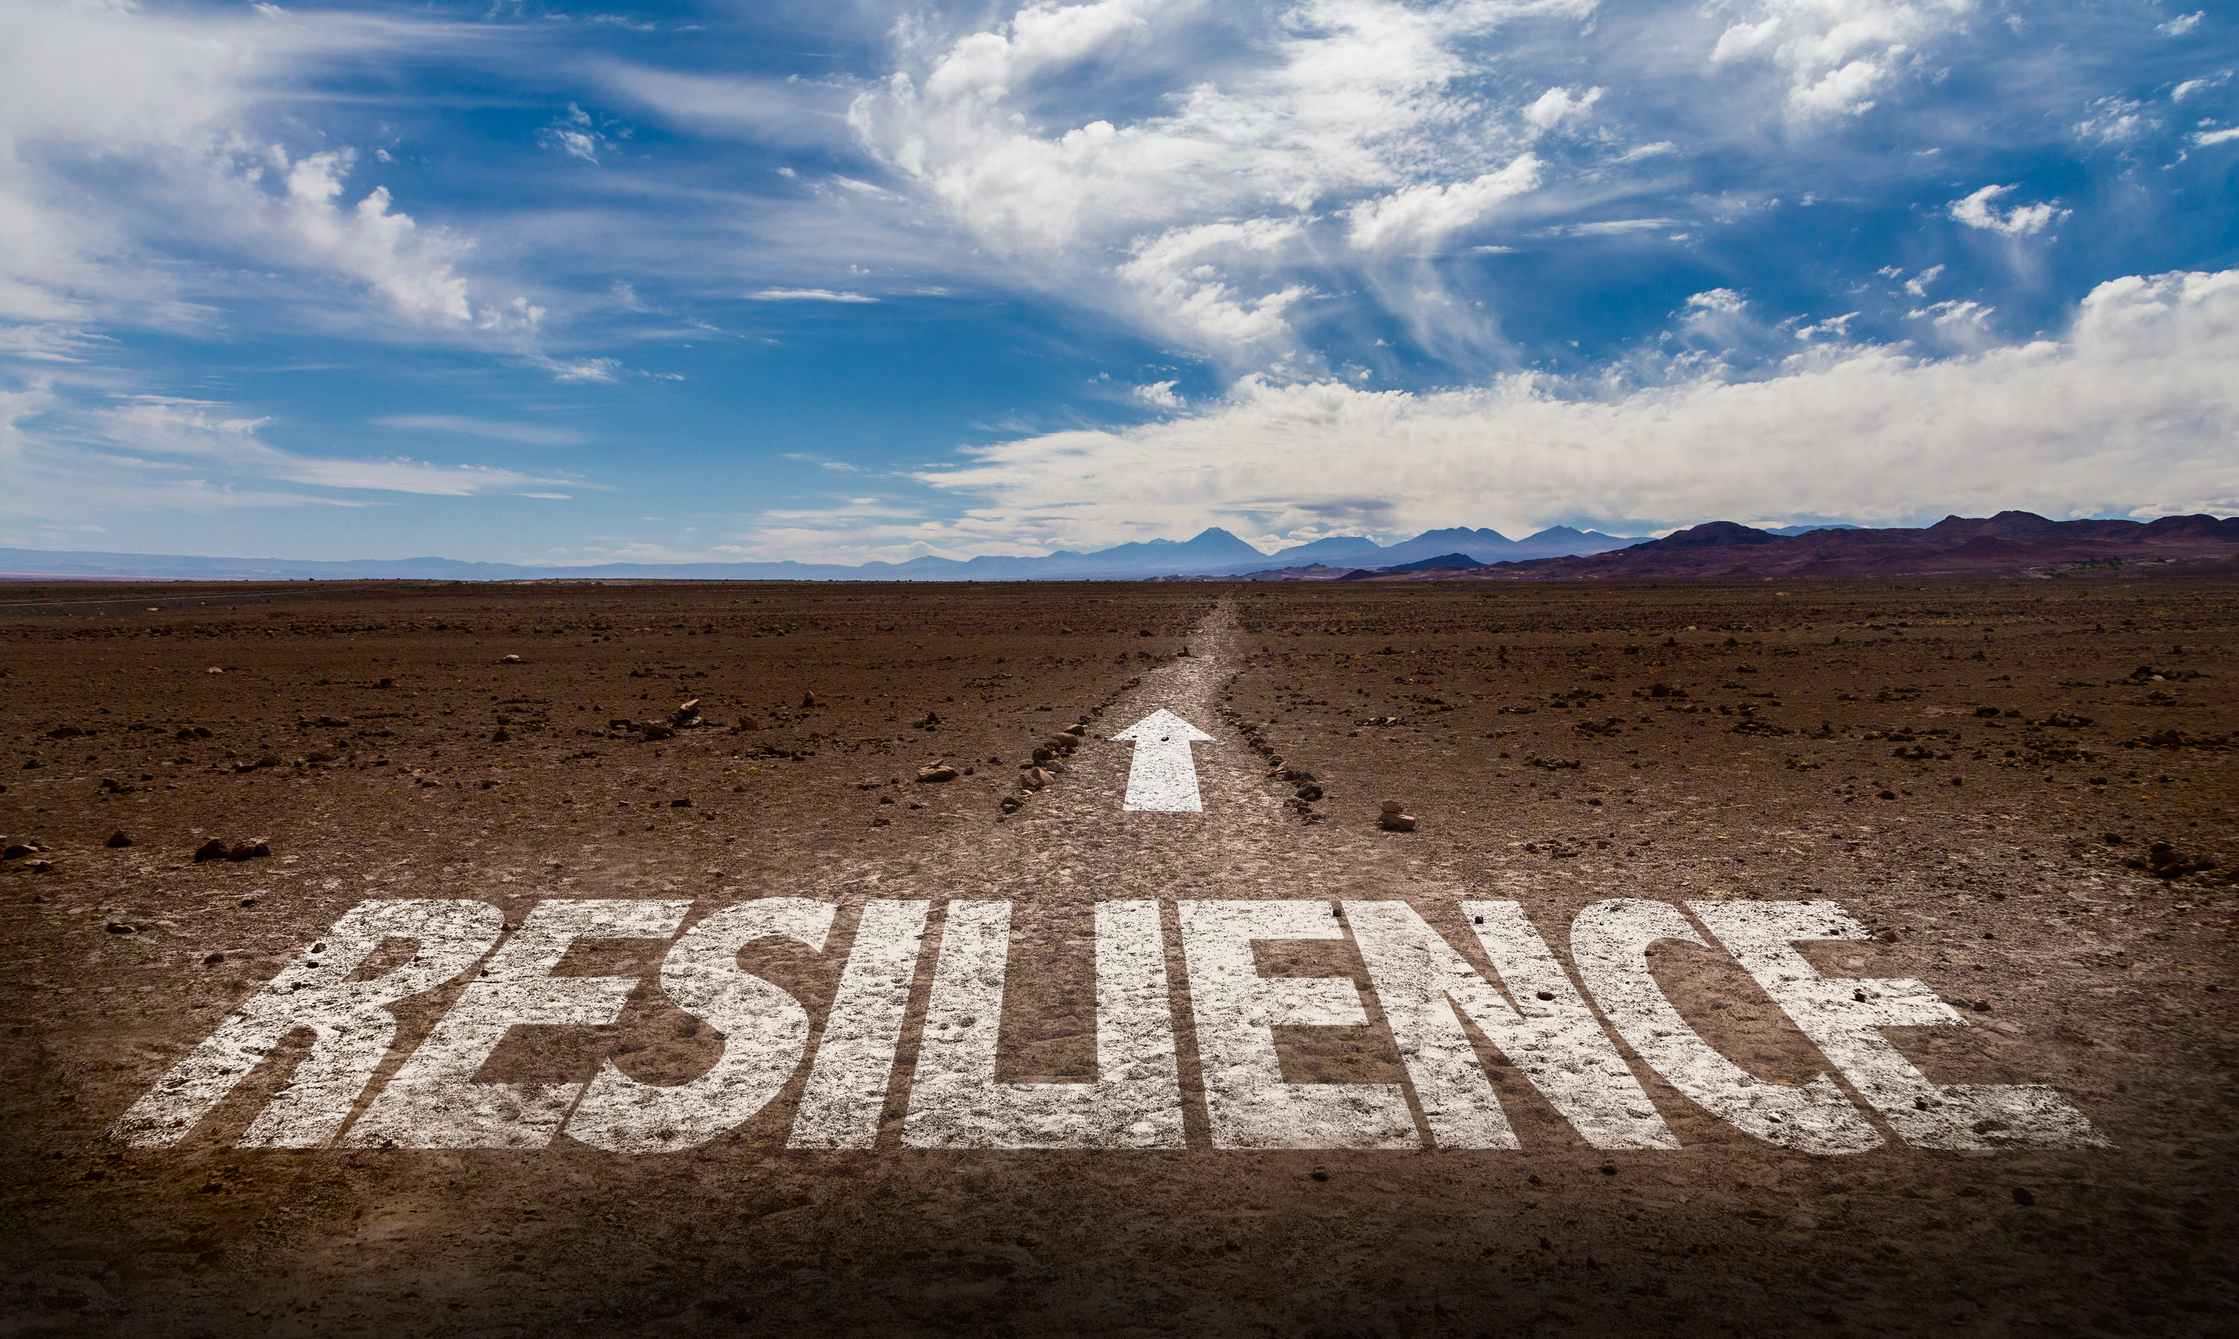 Thinking Traps to Escape Routes: How to scale the biggest barrier to resilience